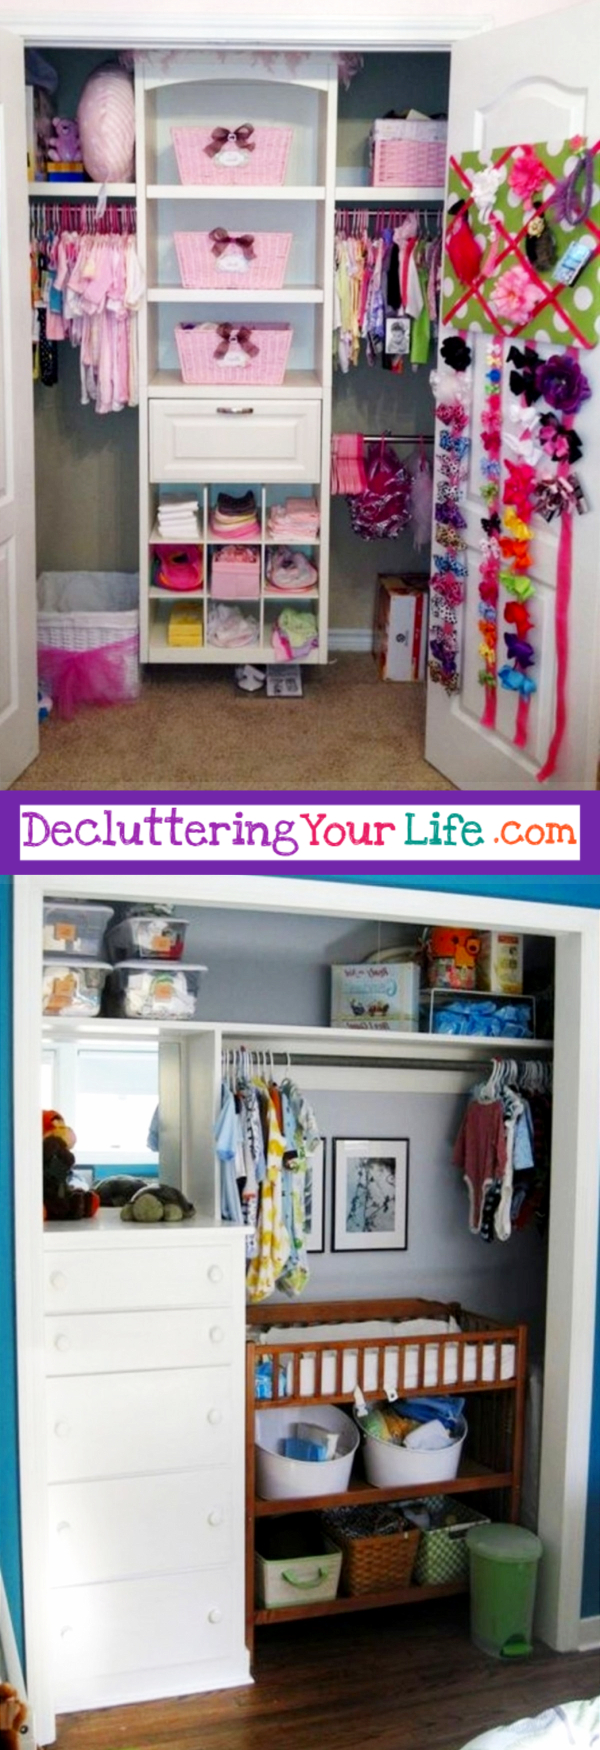 Nursery Closet Organization ideas - great DIY ideas for organizing the baby closet